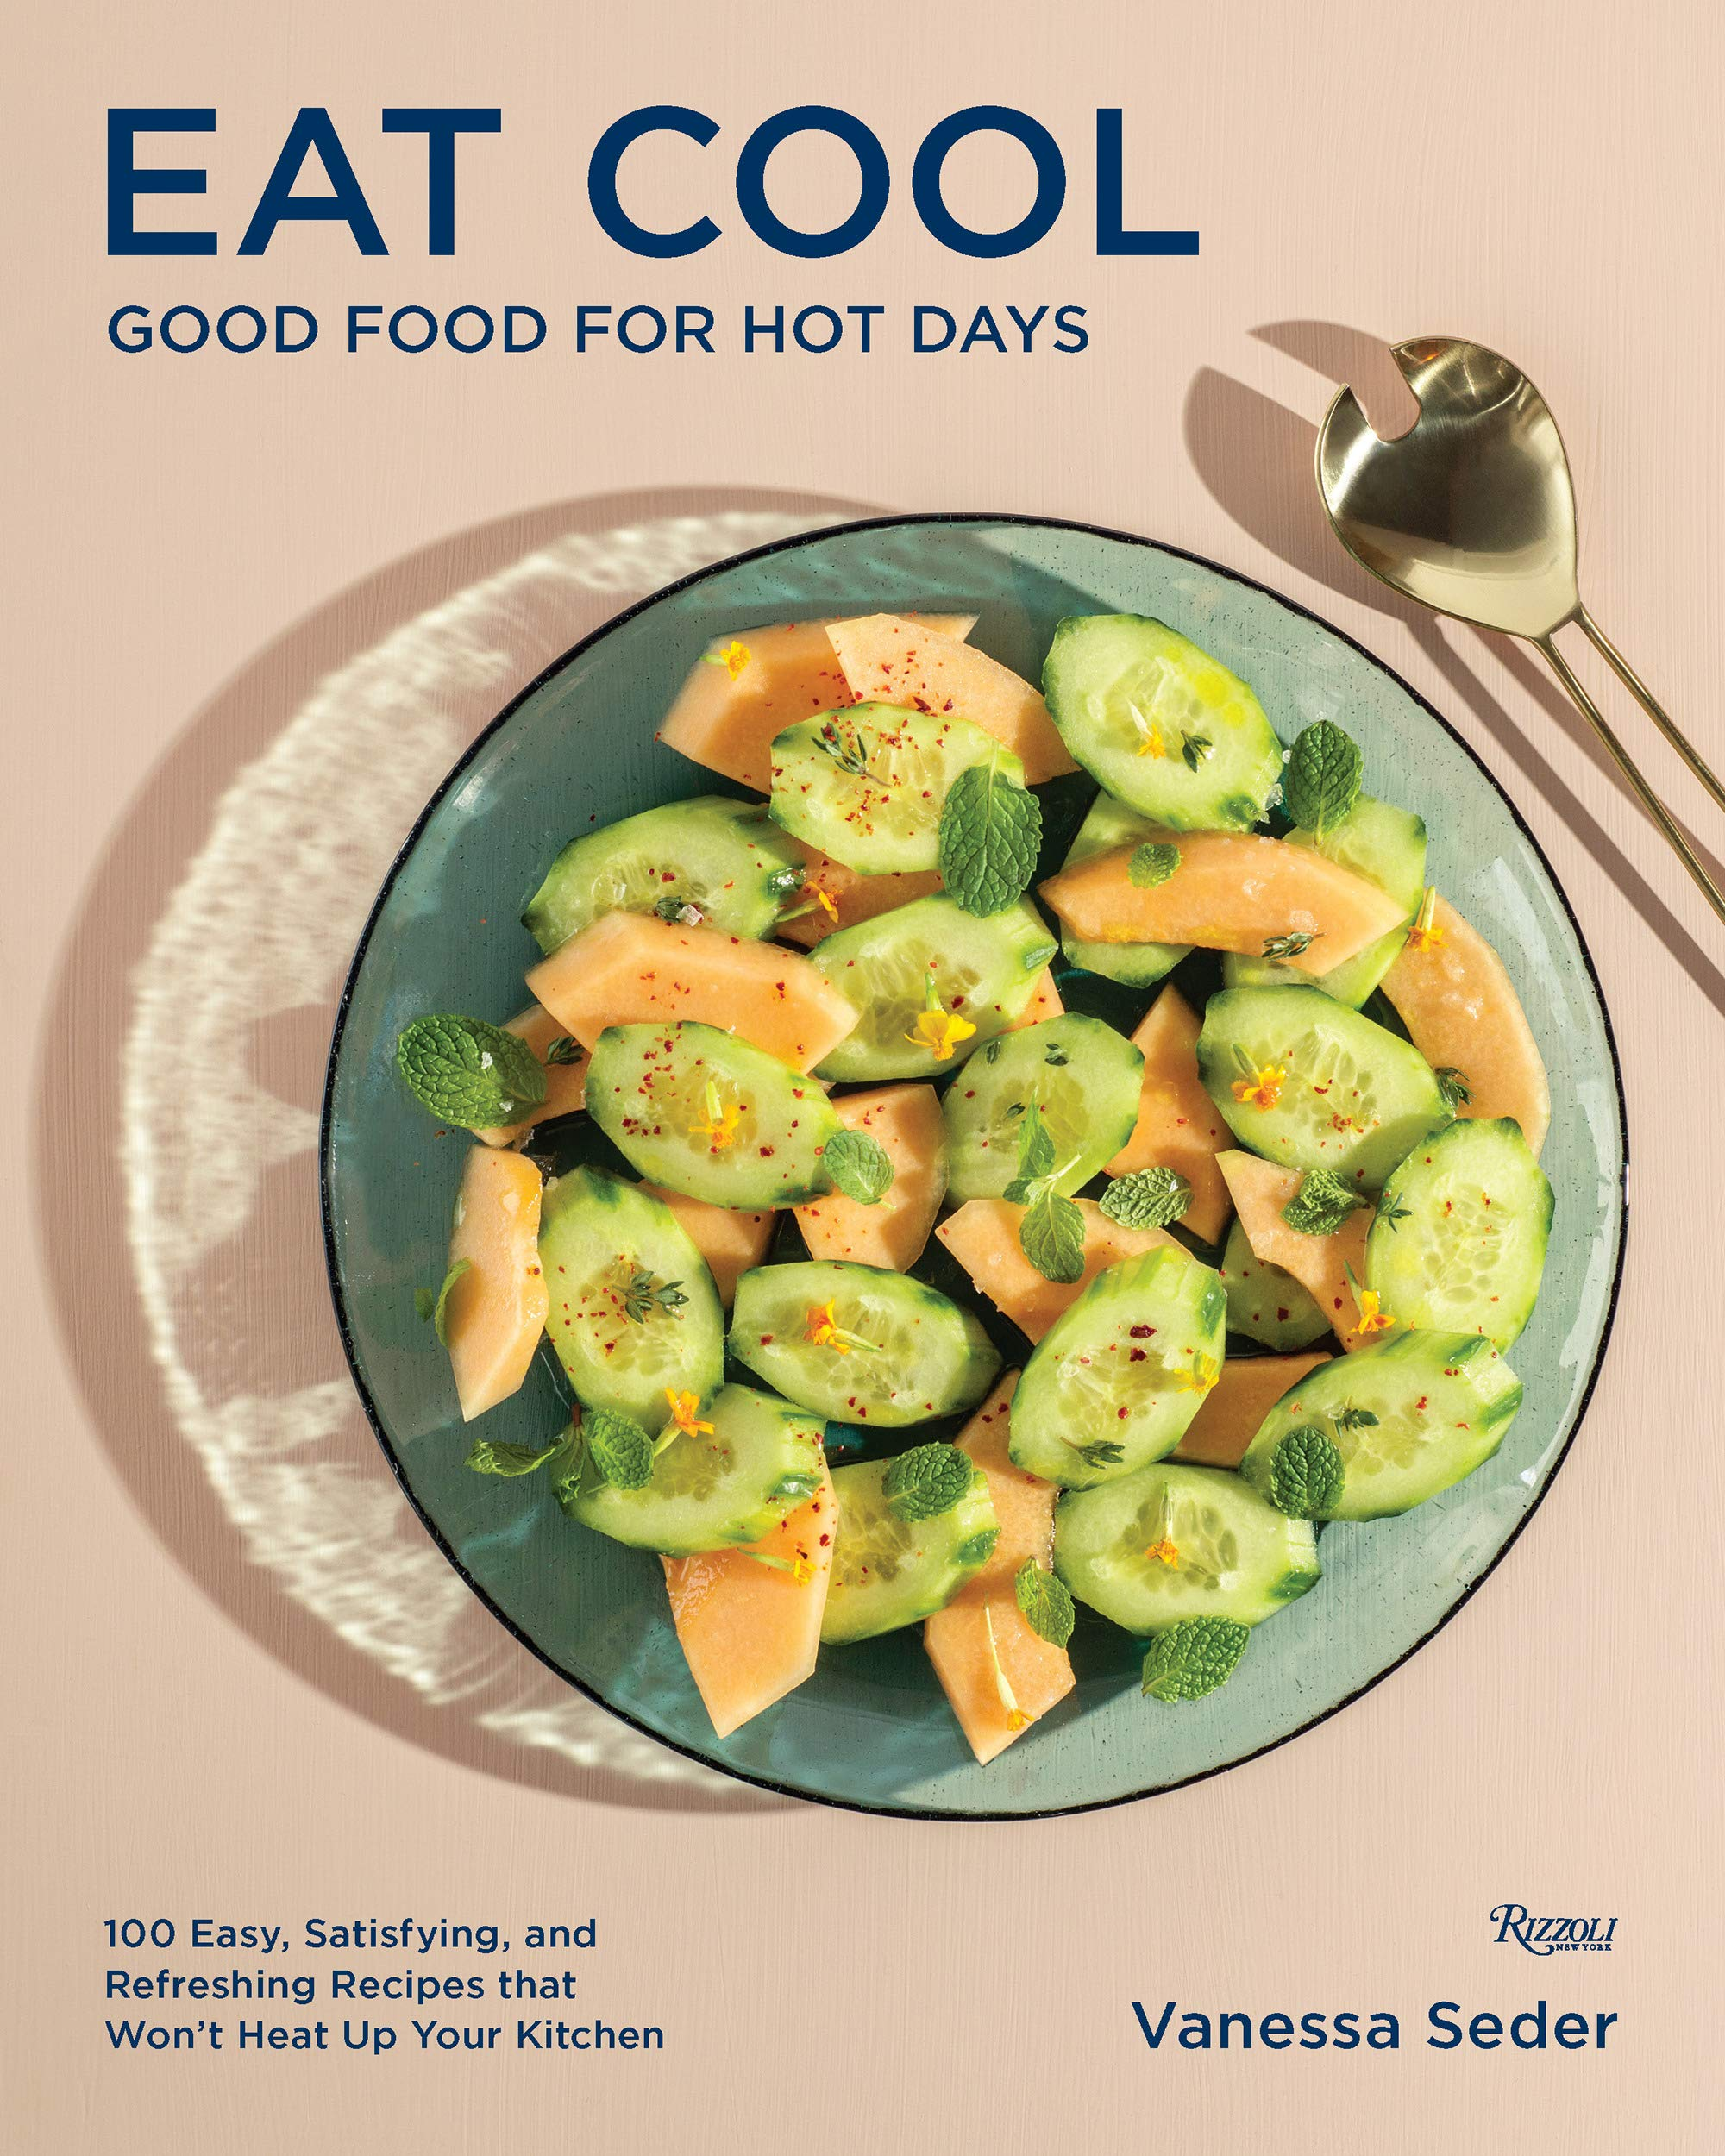 Eat Cool: Good Food for Hot Days by Vanessa Seder (Rizzoli, 2021)